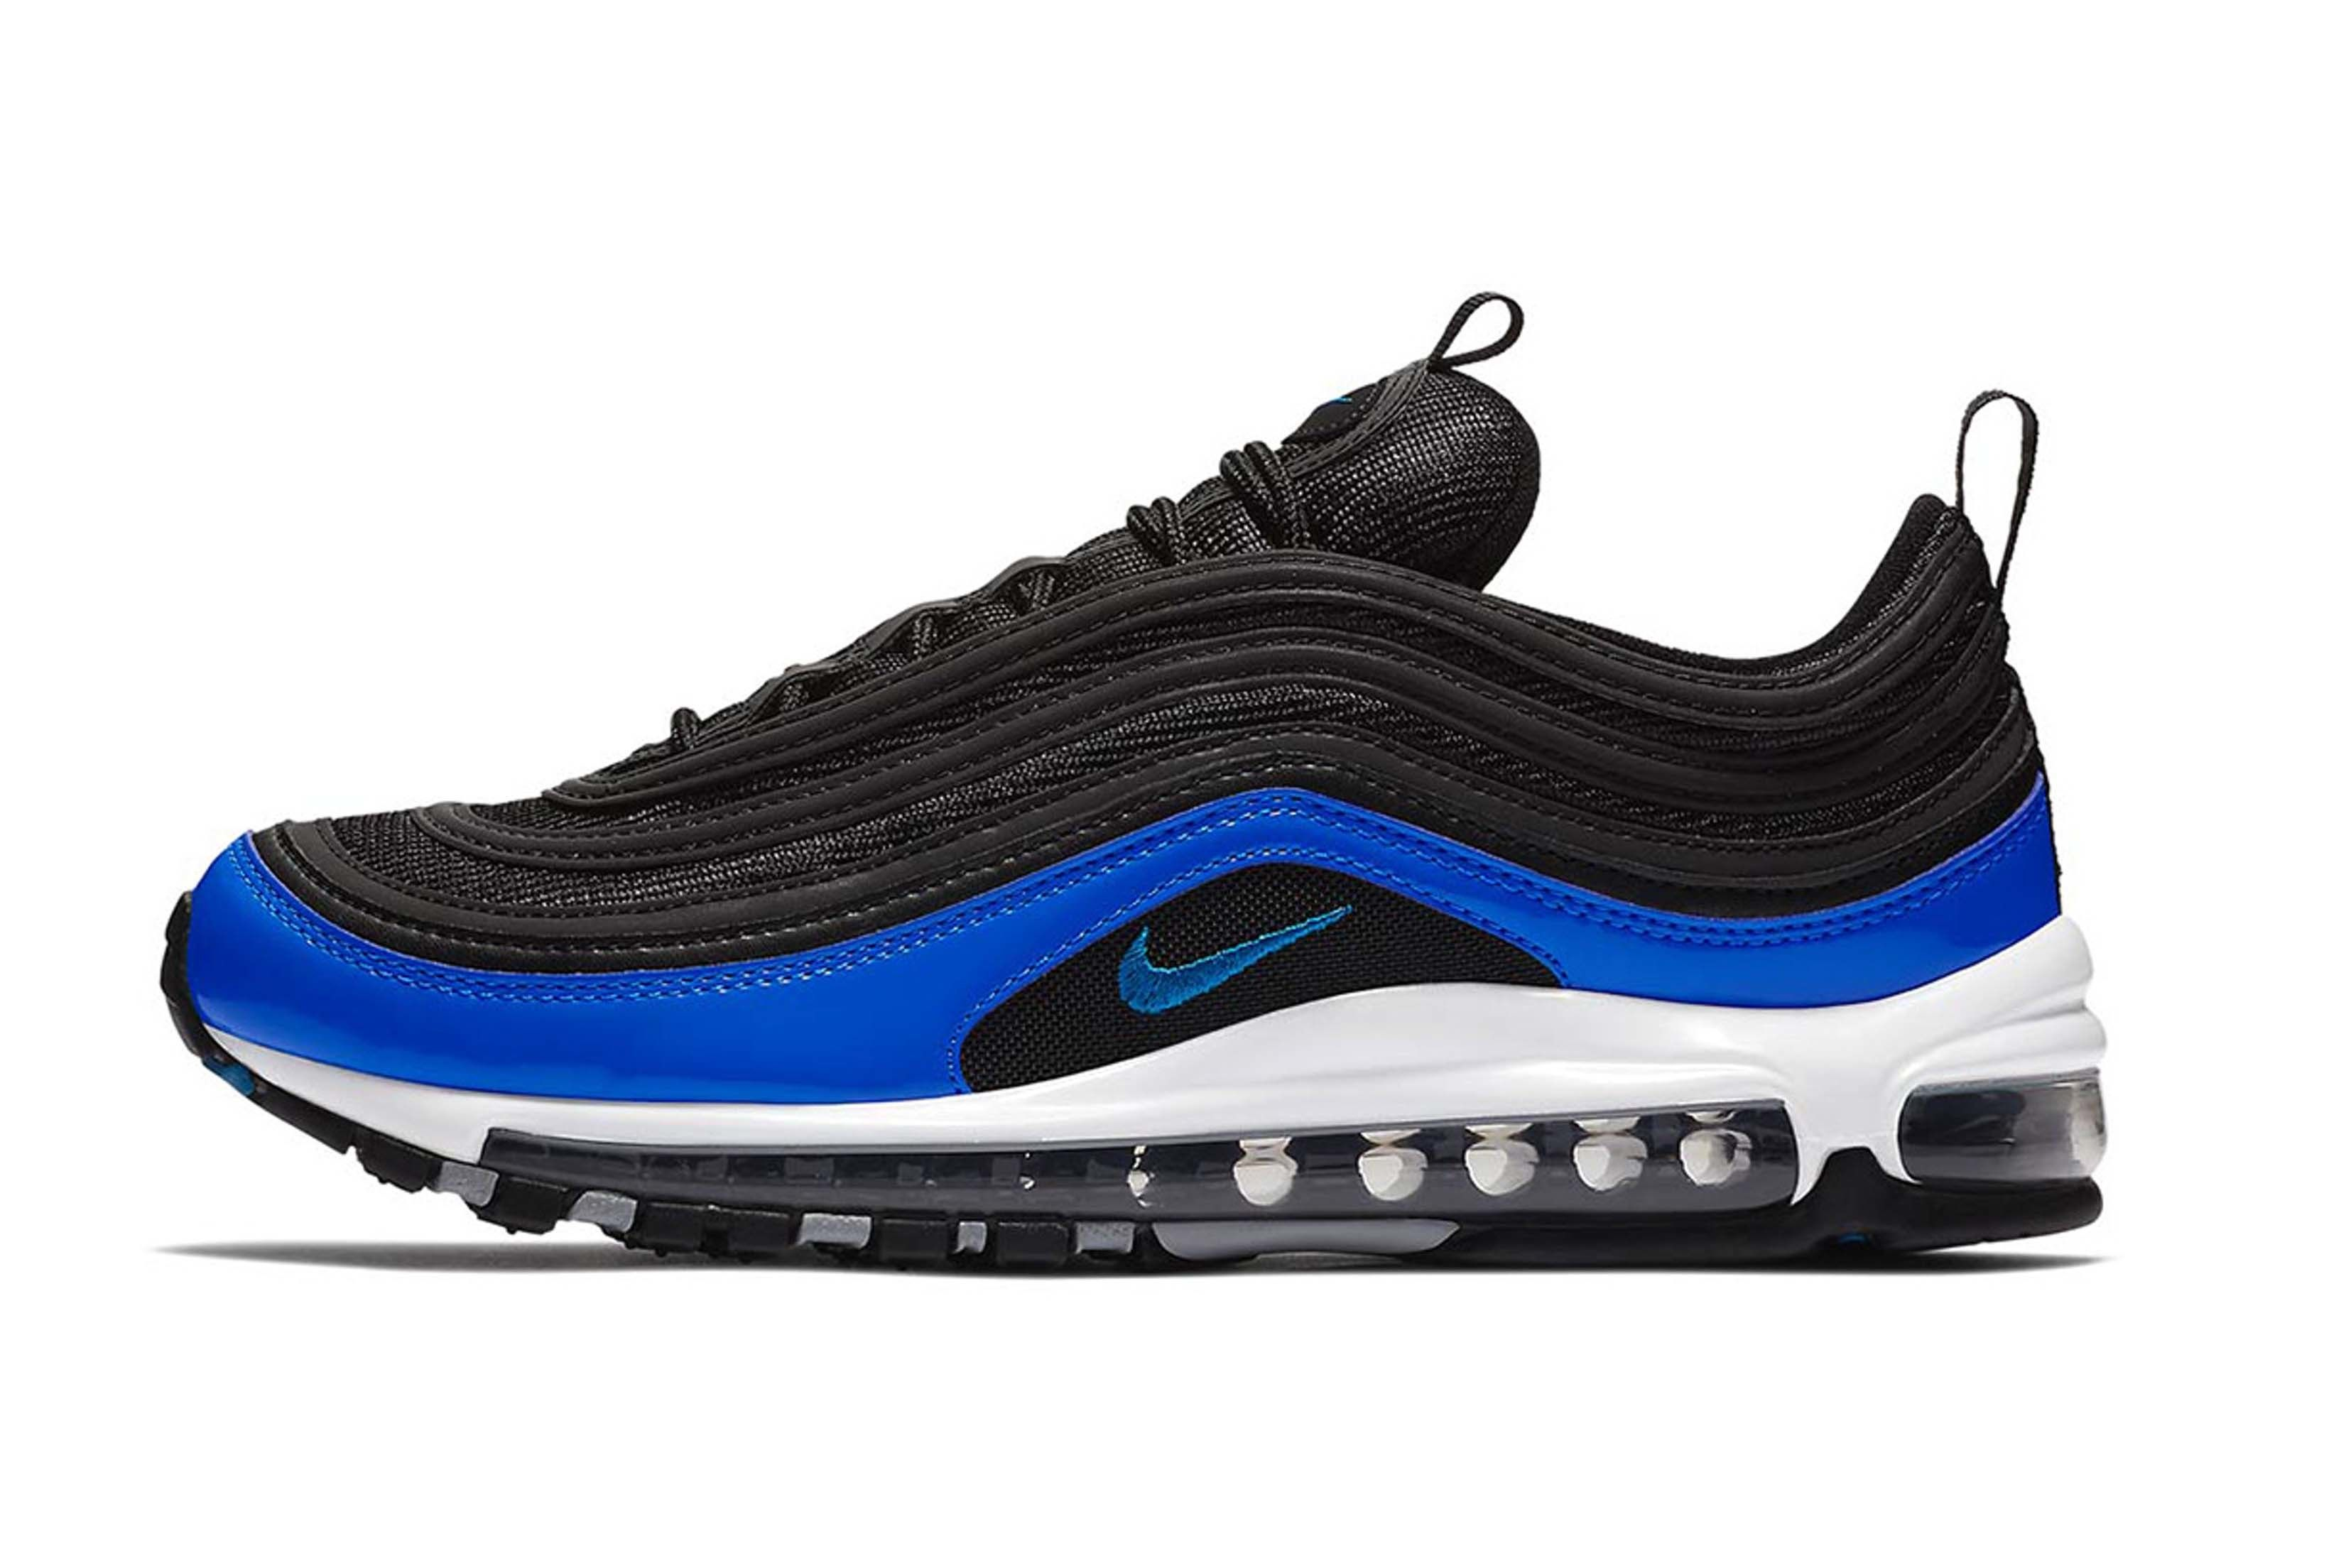 Nike Air Max 97 Binary Blue 1 Sneaker Freaker